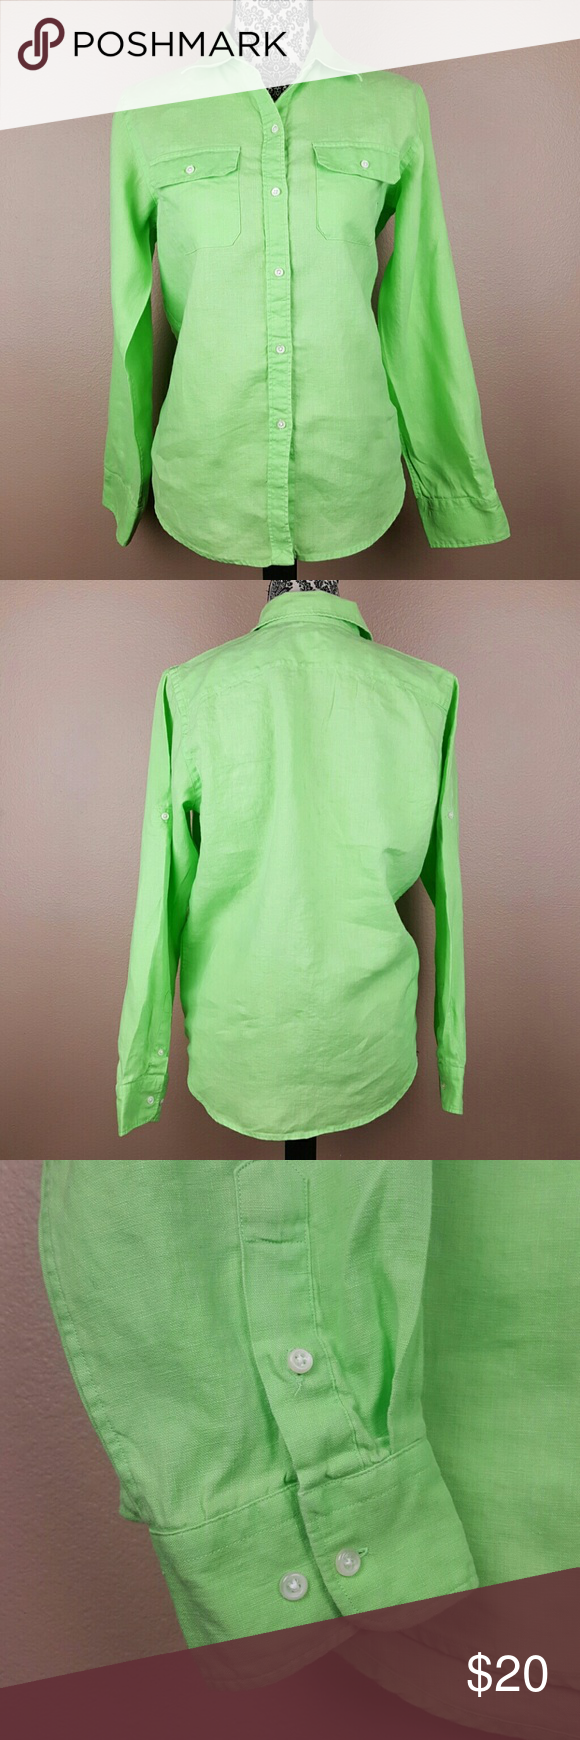 AMERICAN LIVING Lime Green Button Up Size Medium A beautiful lime green button up by American Living from Macy's.  • Size Medium • Laying flat: Length 26 inches,  Underarms across 21 inches. • 100% Linen. Soft, flowy, breezy. • Lime green color. • Machine washable.   Looks great with jeans or tied up on the front with a skirt as shown in the sample pics above. American Living  Tops Button Down Shirts